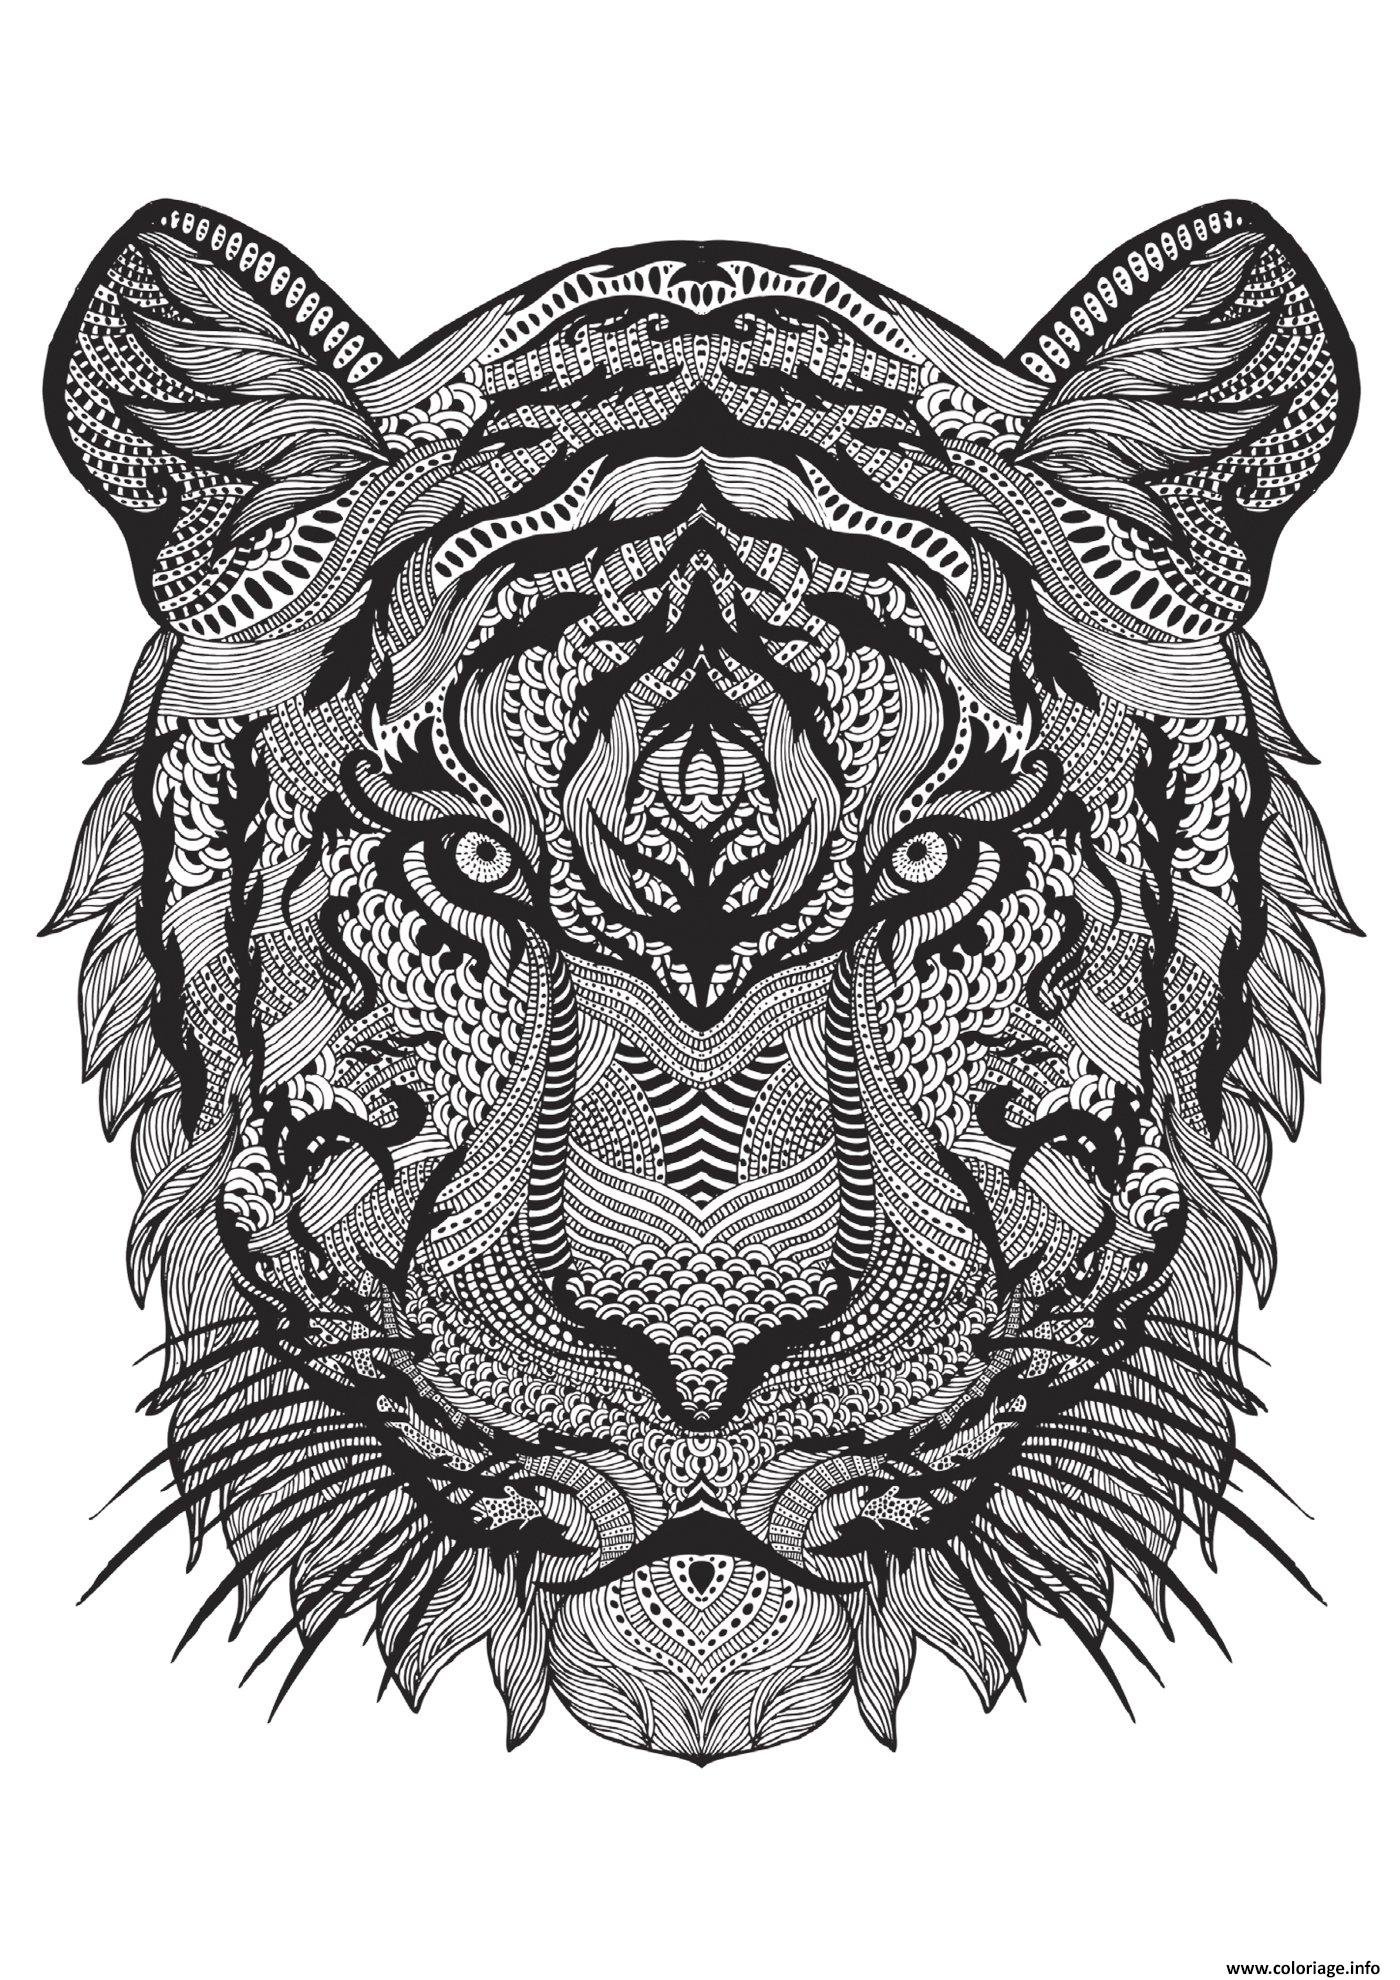 Coloriage adulte animal tigre difficile antistress dessin for Dessiner un jardin gratuit